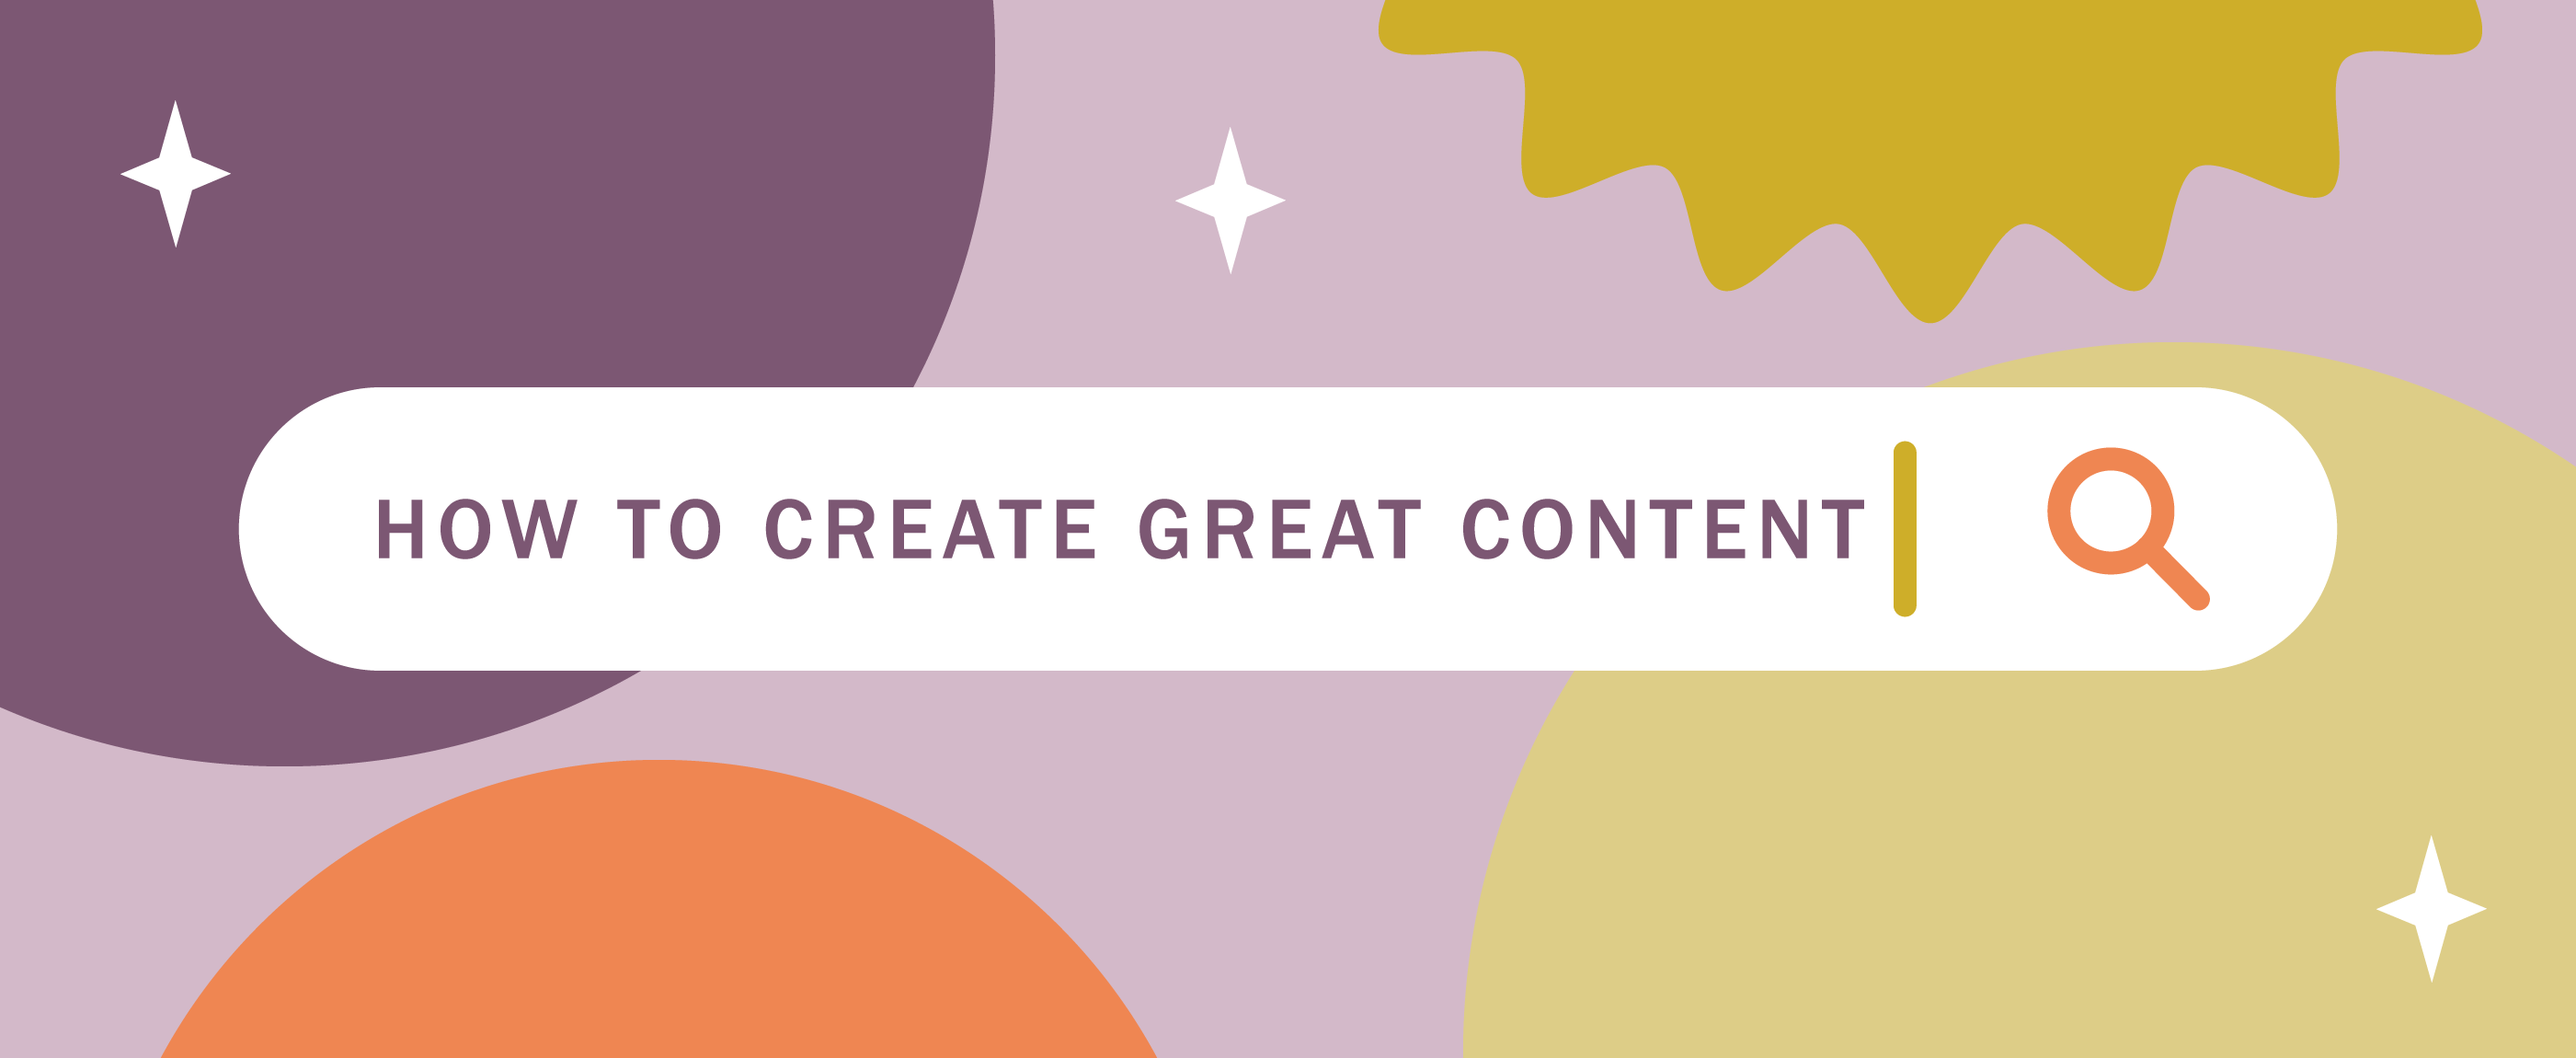 A 10 Step Guide to Creating Great Content